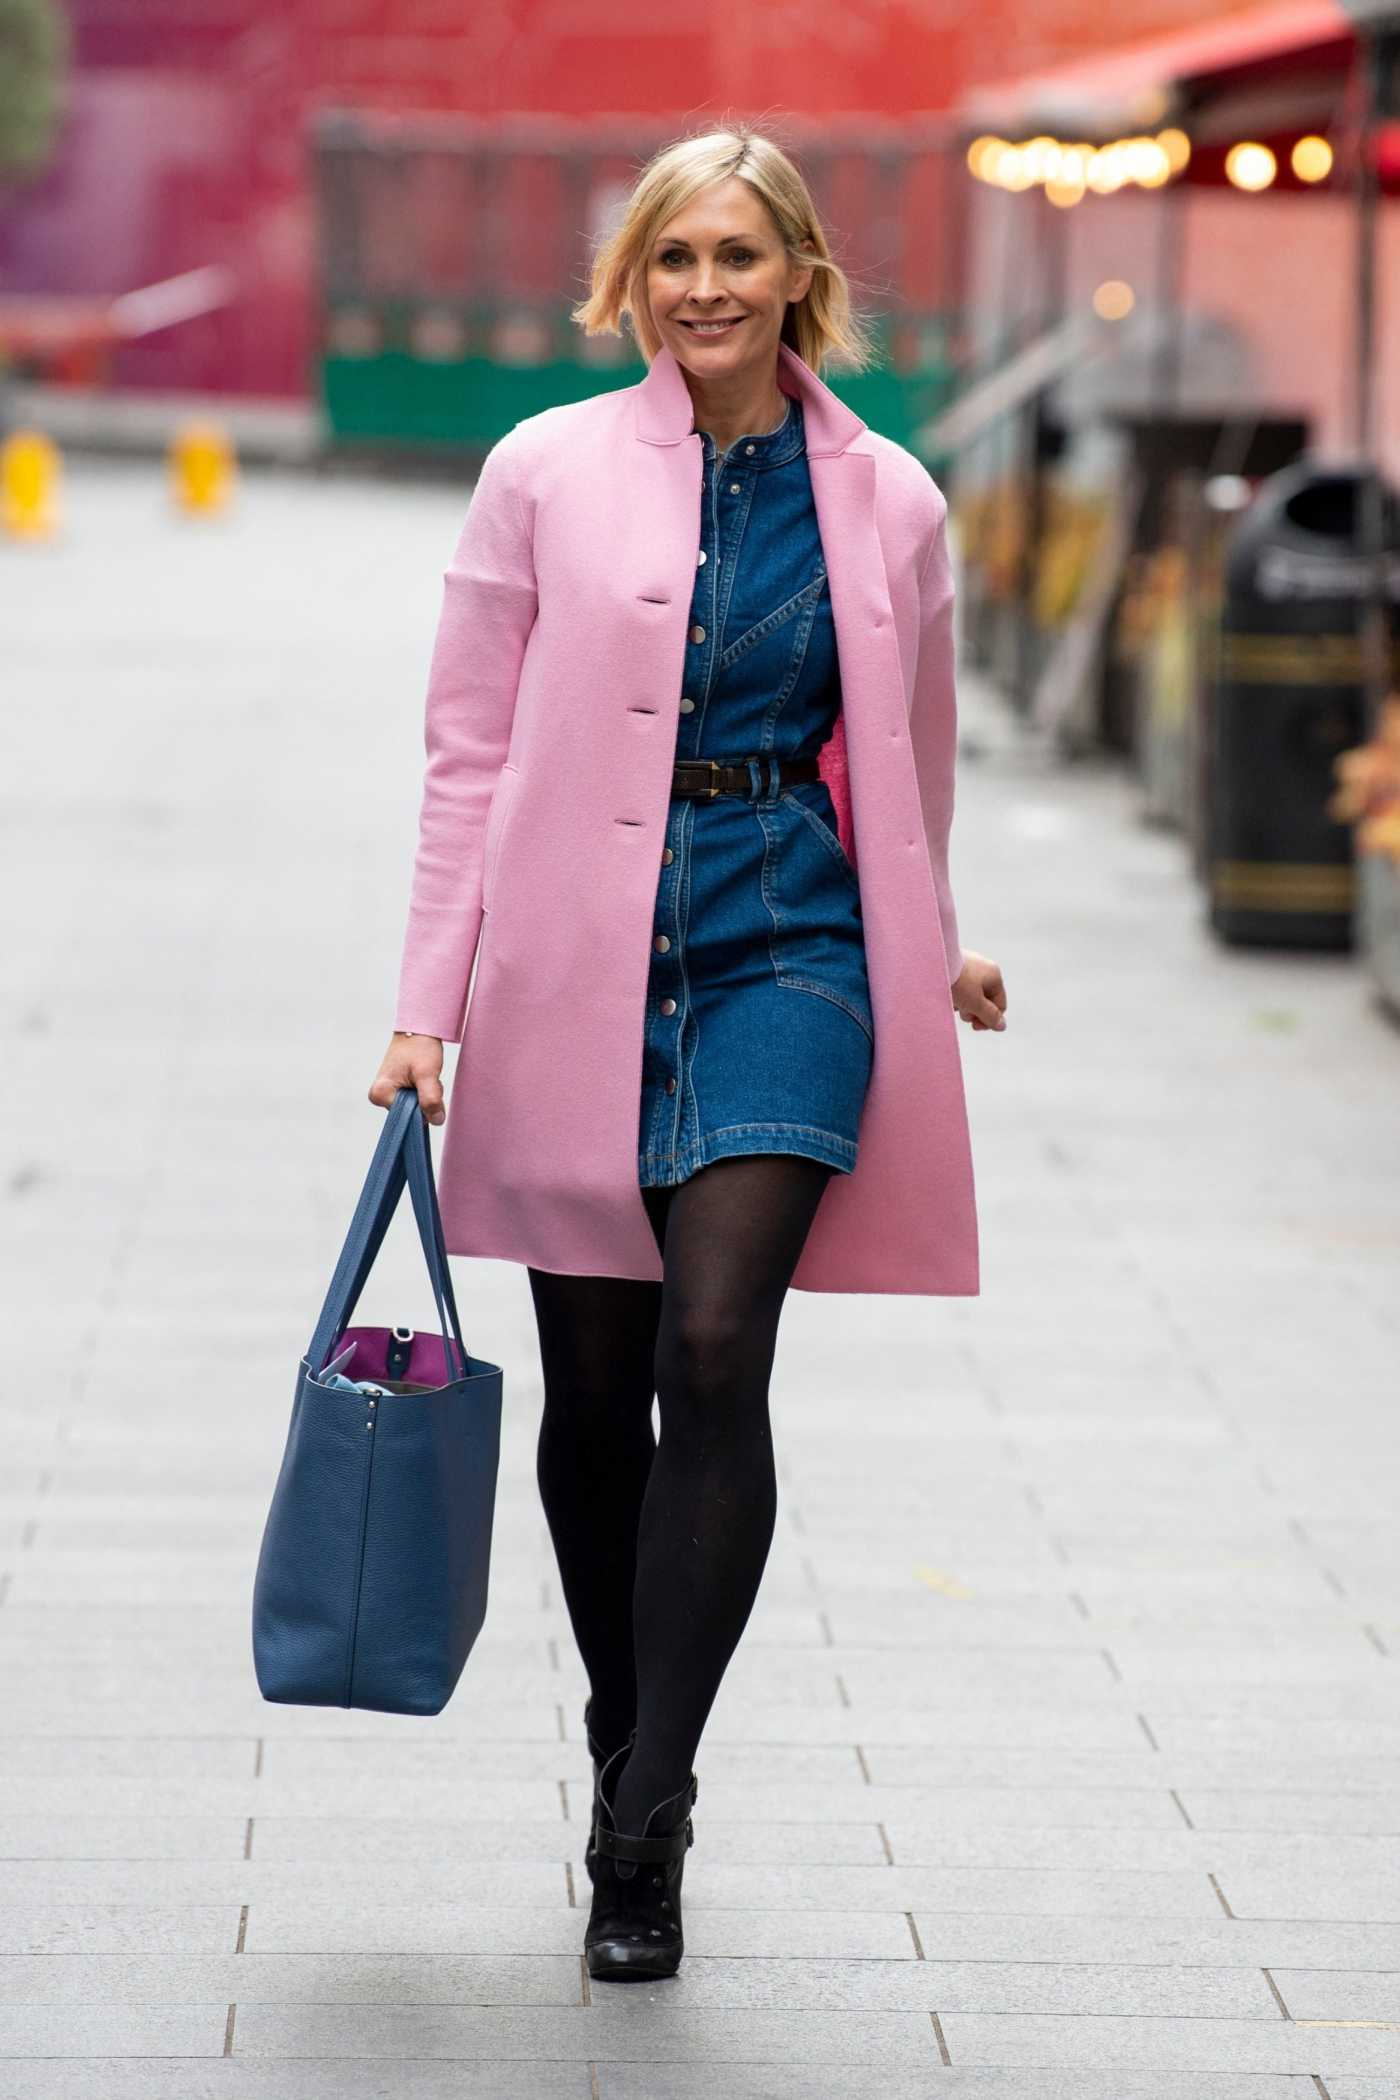 Jenni Falconer in a Pink Coat Arrives at the Global Studios in London 05/14/2021